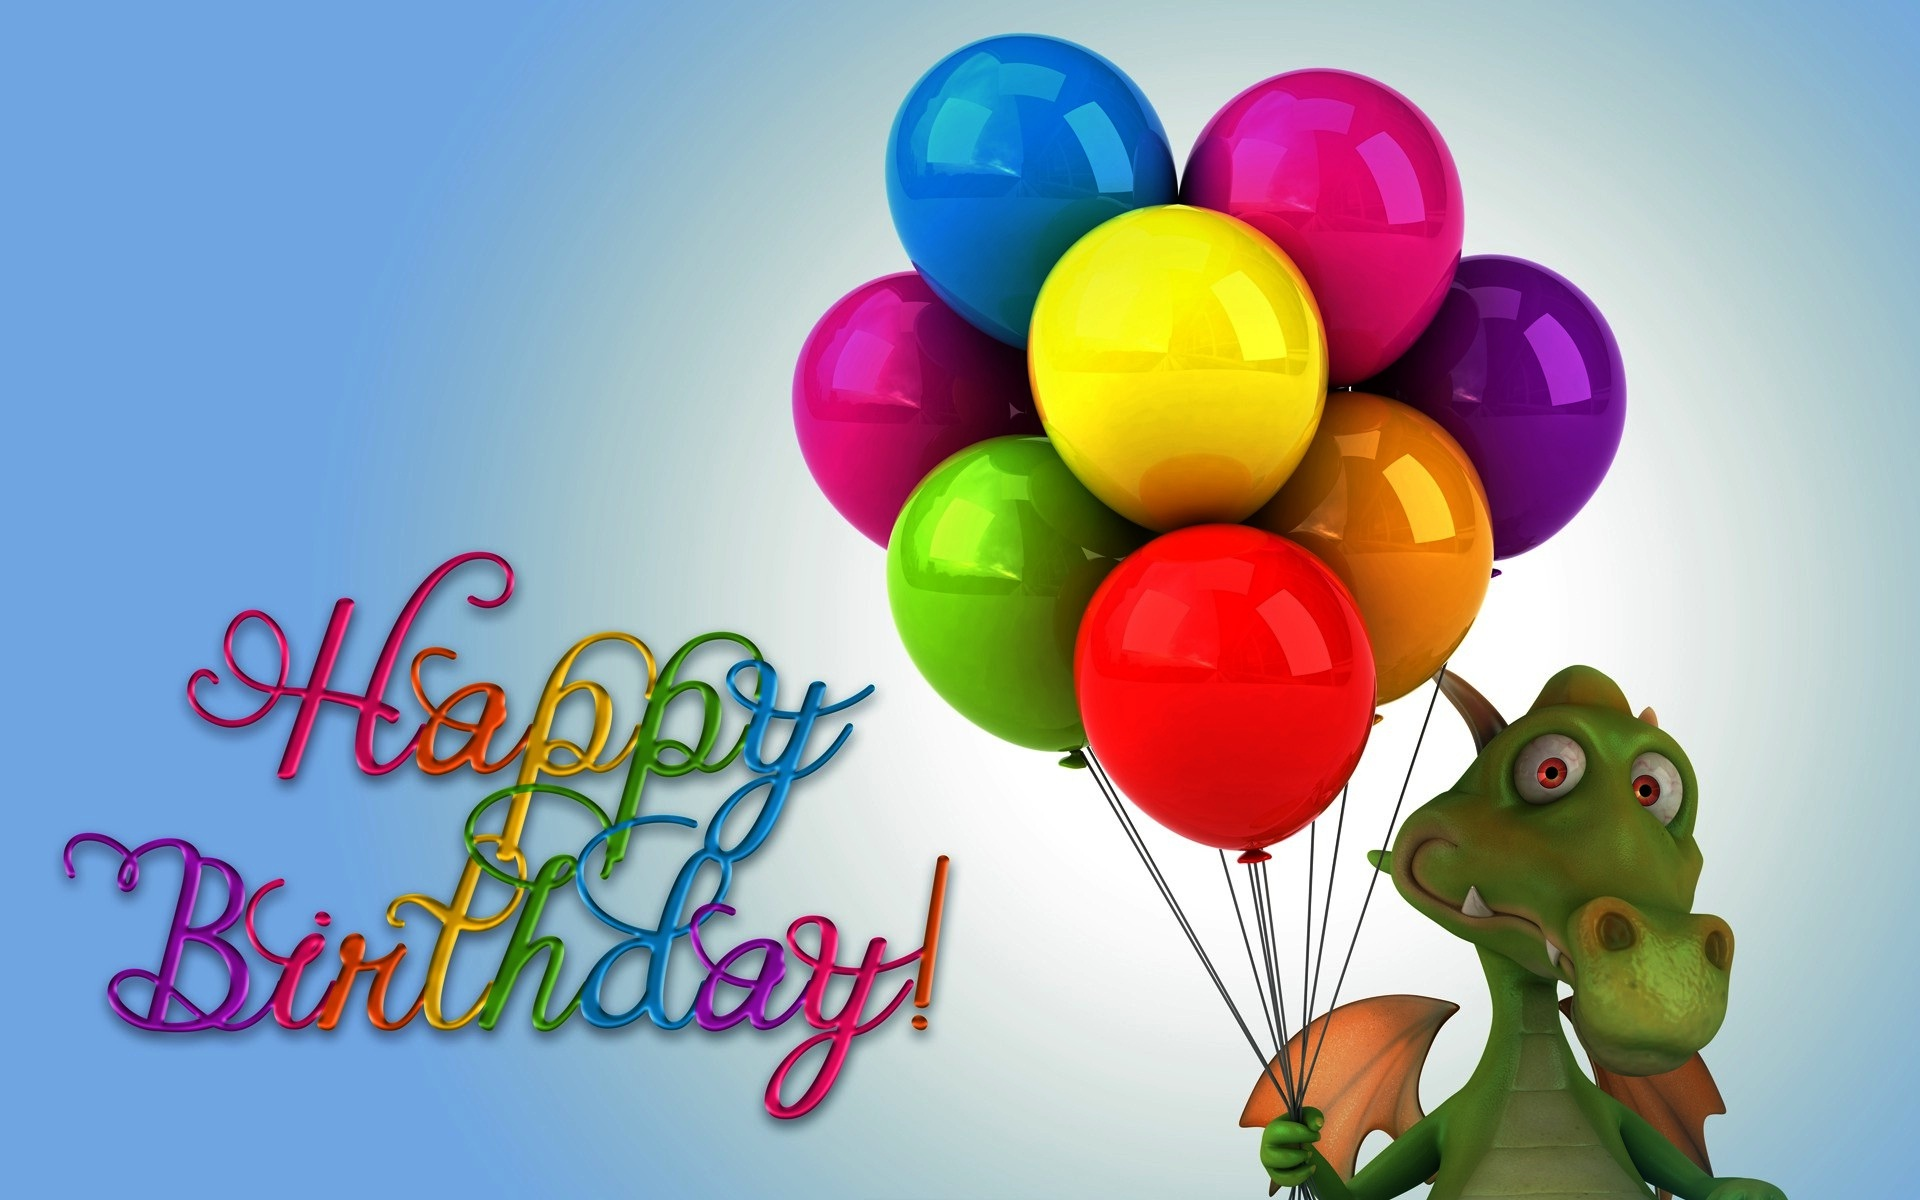 happy birthday balloons wallpaper ; Happy-birthday-wishes-nice-balloons-wallpapers